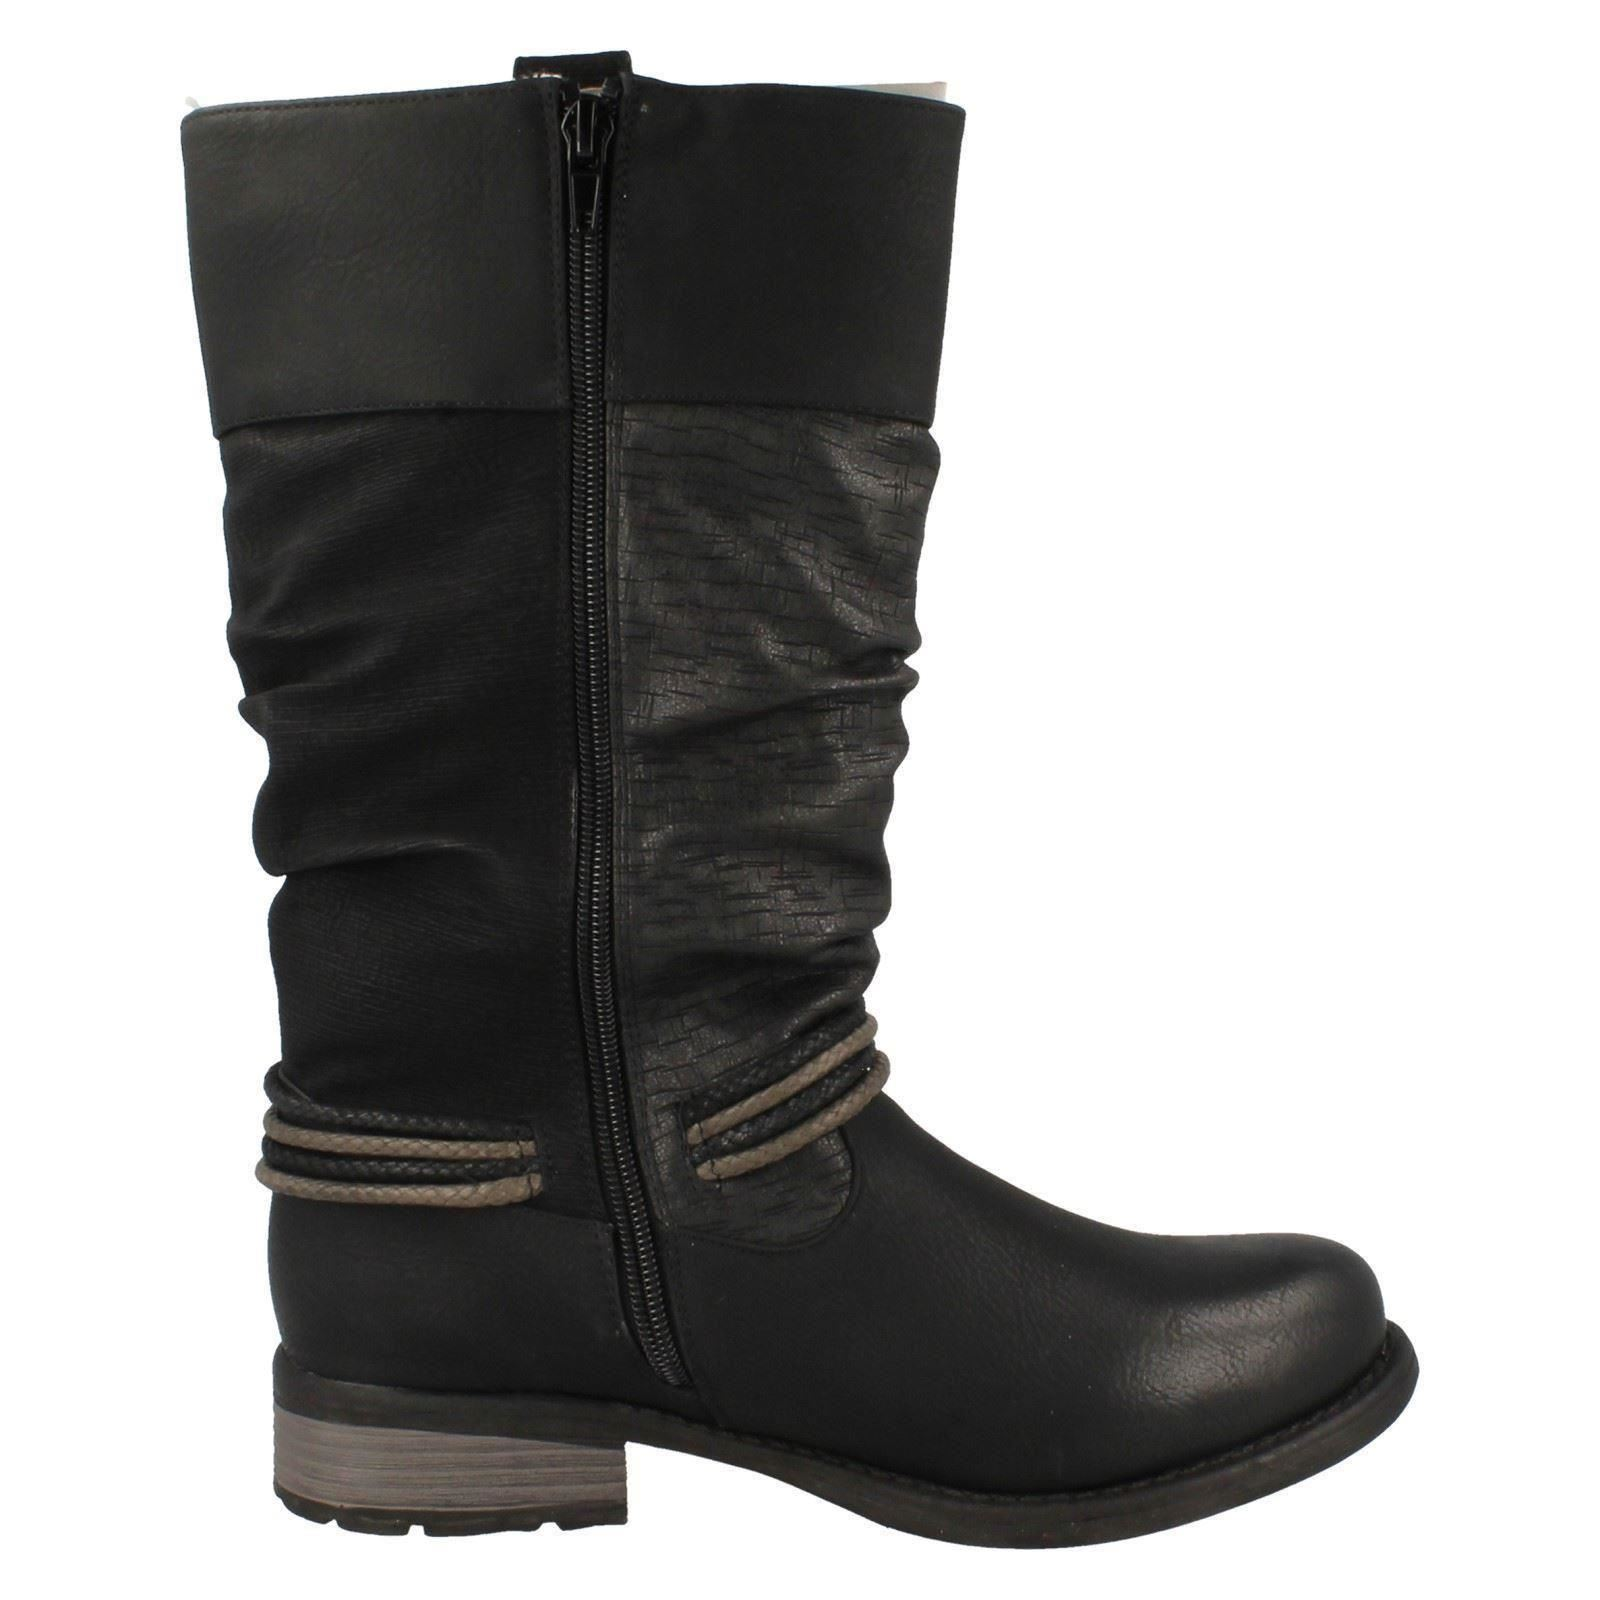 Ladies Remonte D0579 Wool Lined Water Resistant Resistant Resistant All Weather Ankle Boots ~ K d0d26e